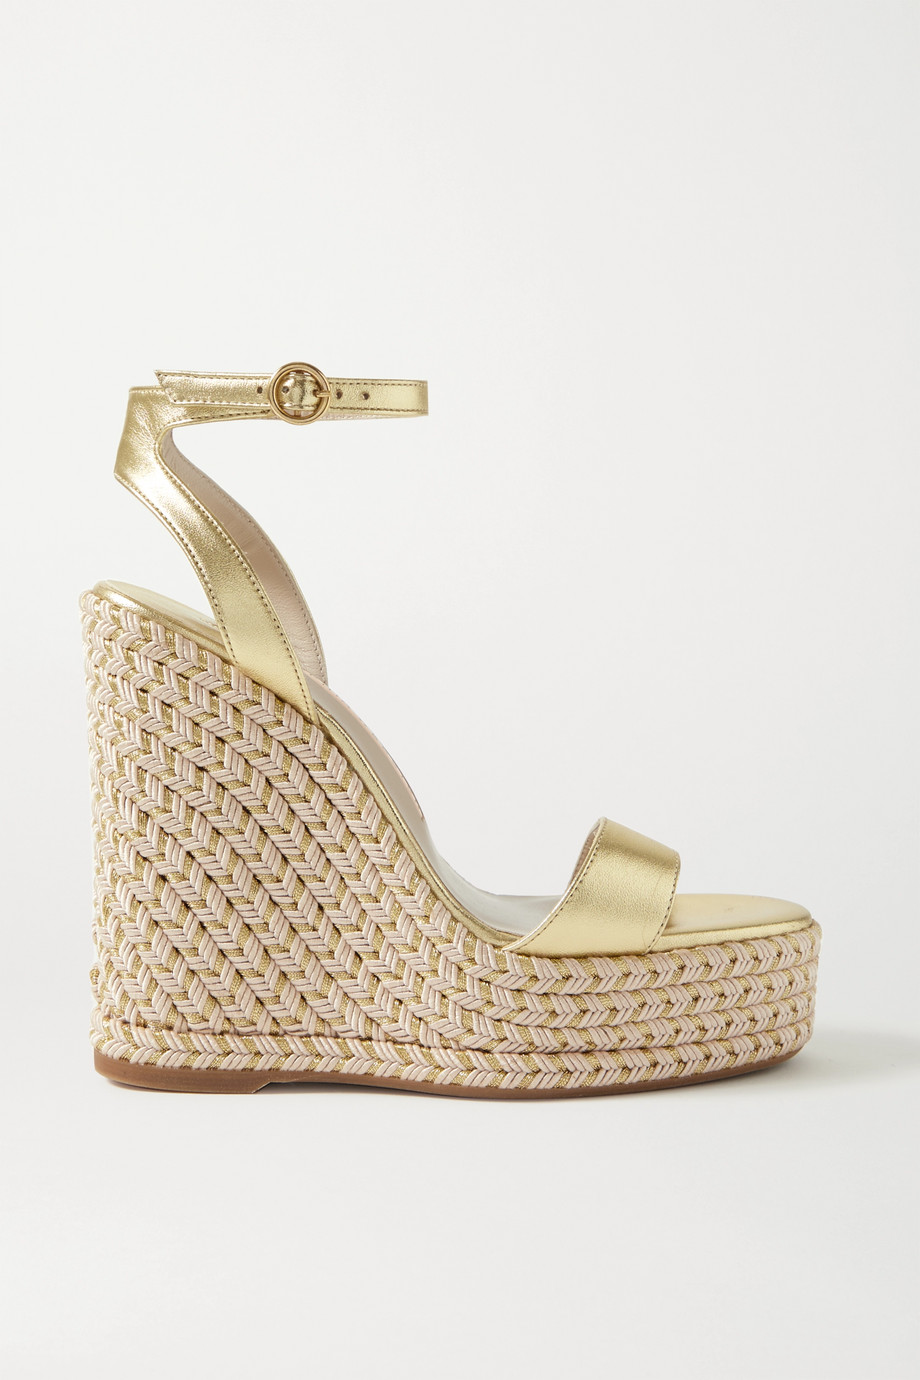 Sophia Webster Lucita metallic leather espadrille wedge sandals